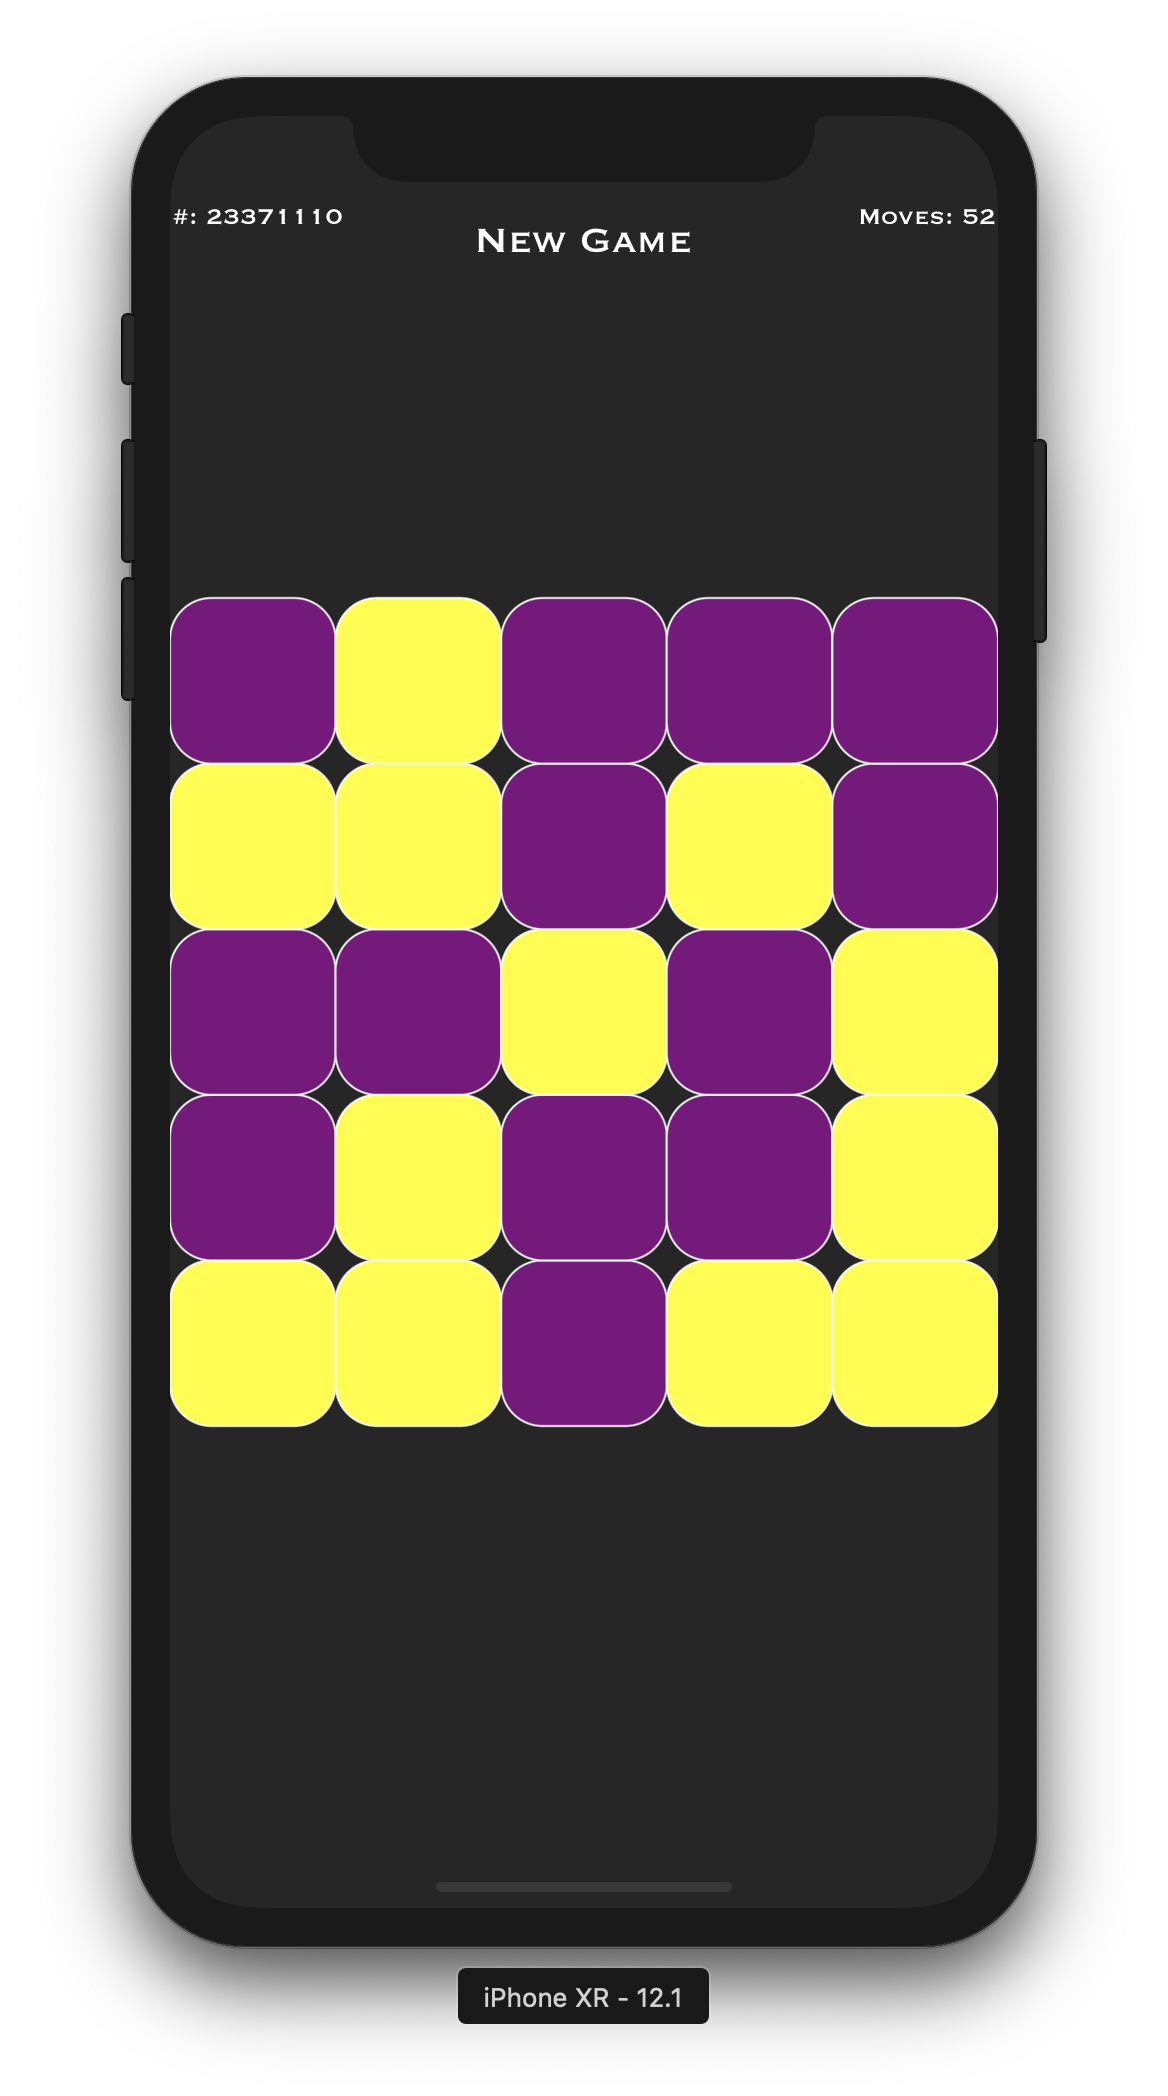 Lights out SpriteKit game on iPhone XR